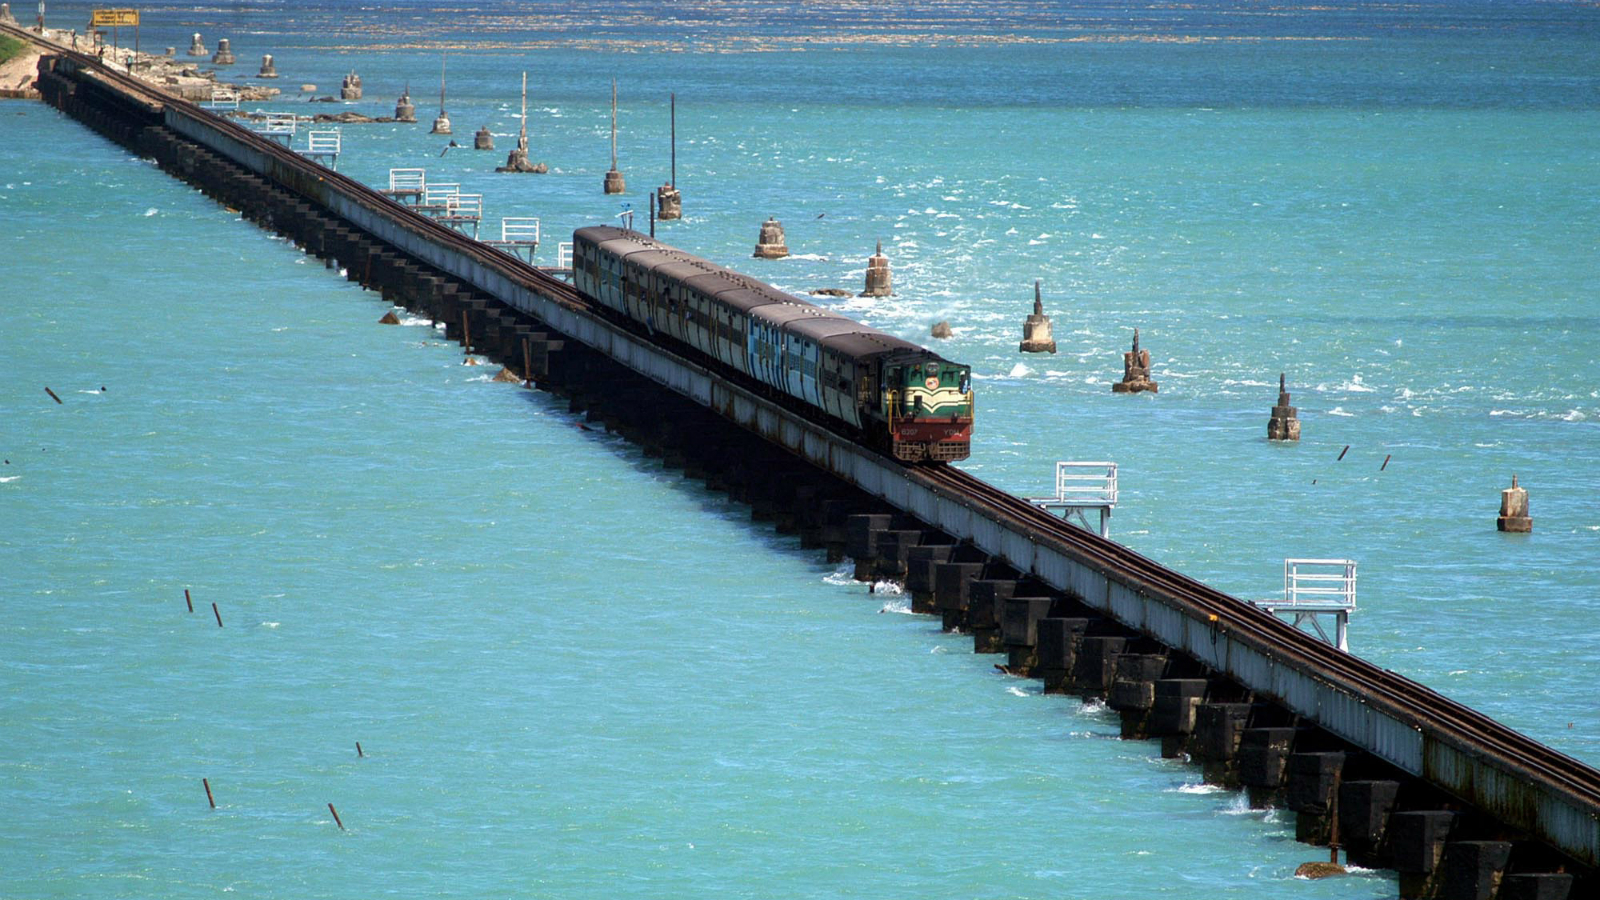 A passenger train passes over a bridge that connects Pamban to the island of Rameshwaram about 635 kilometers (397 miles) south of Madras, India, Thursday, June 22, 2006.